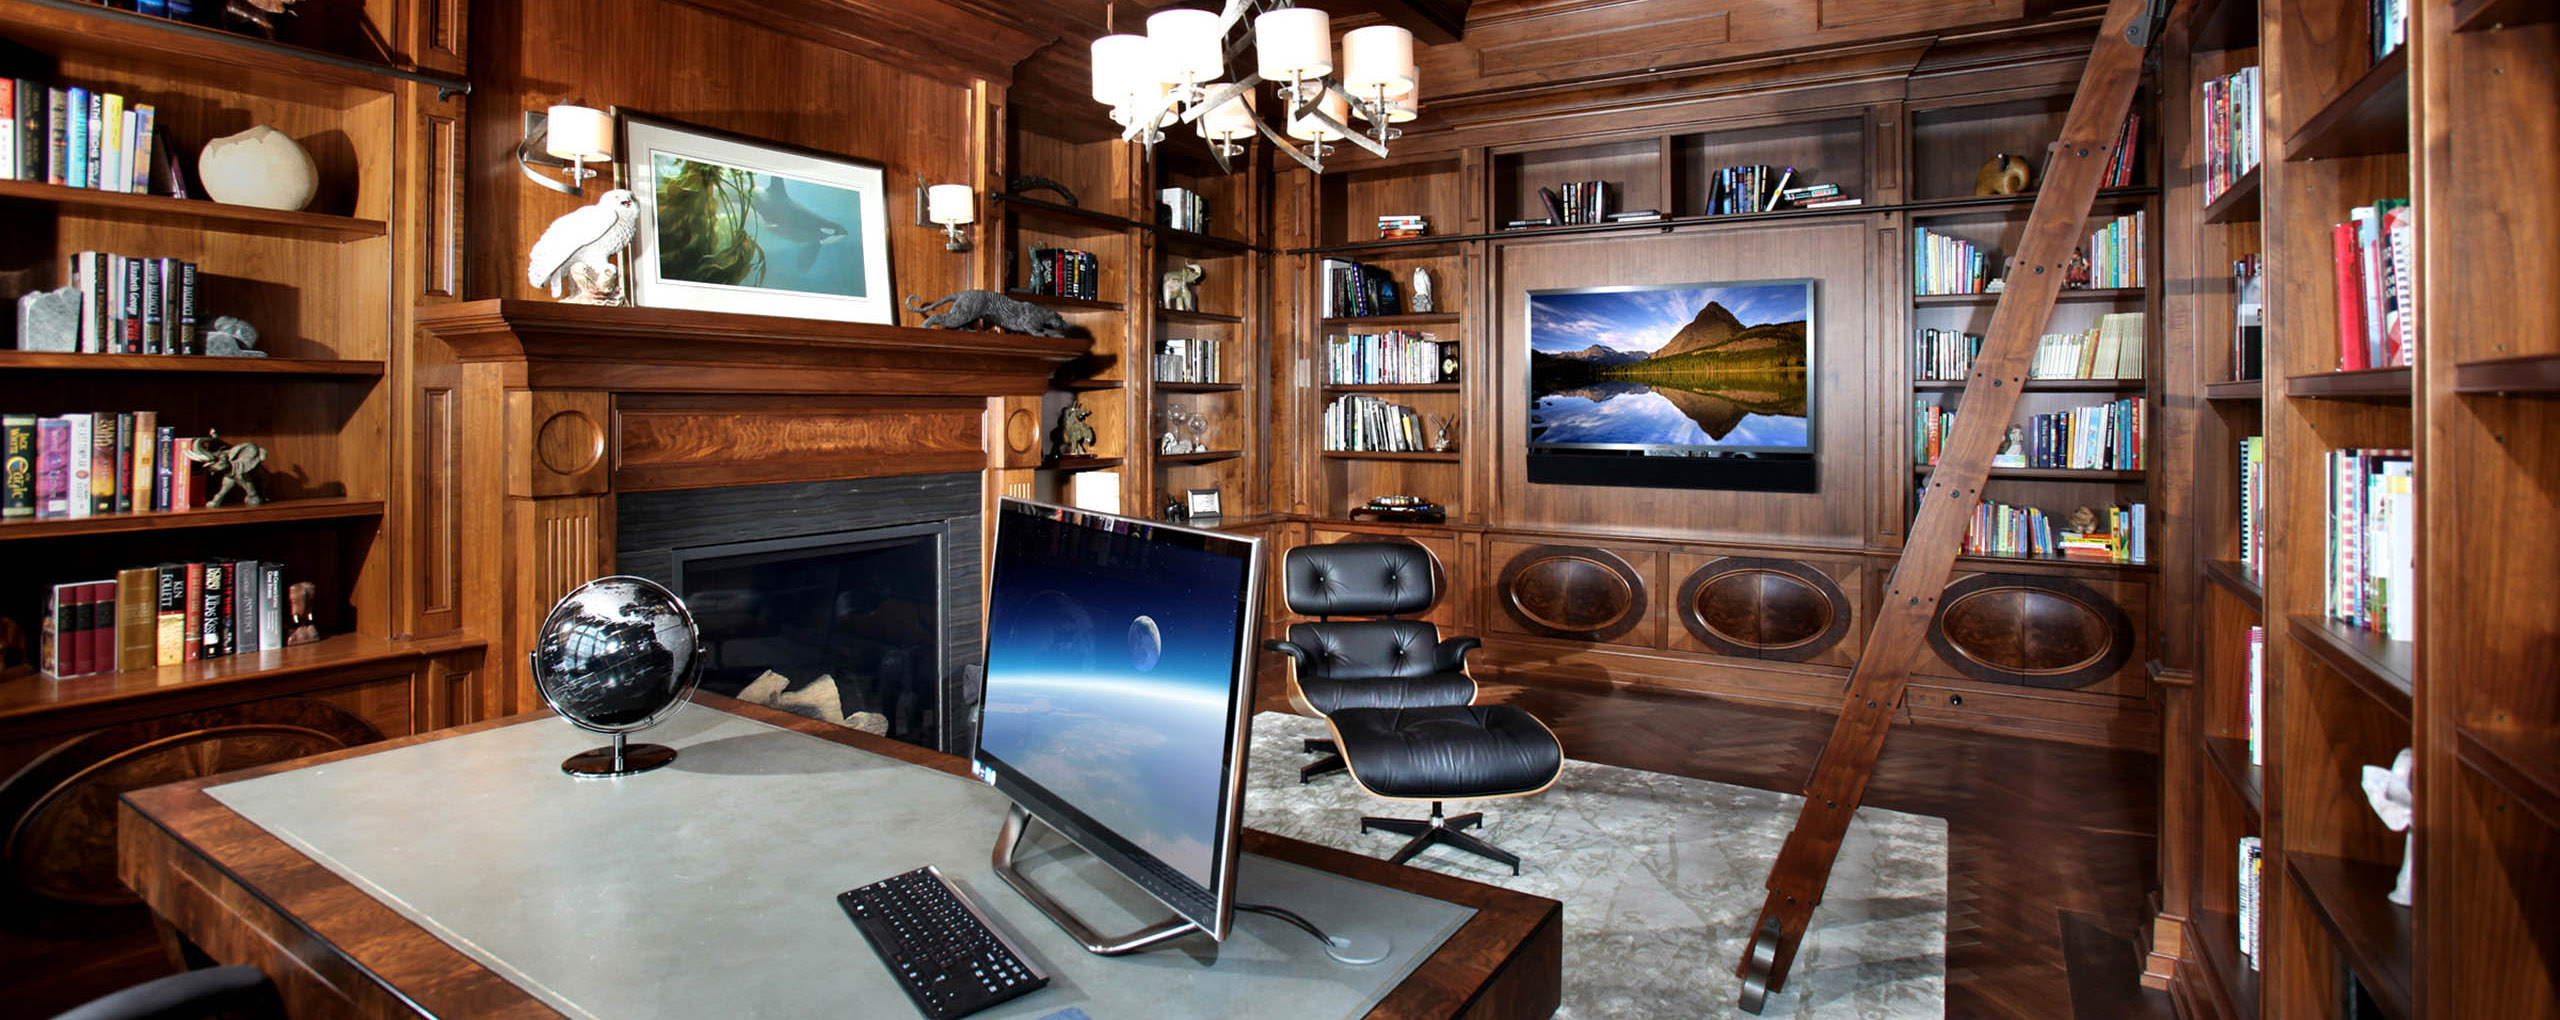 house furniture sets a room cupboard discounted full of get select blue rooms american living factory sofa packages love freight